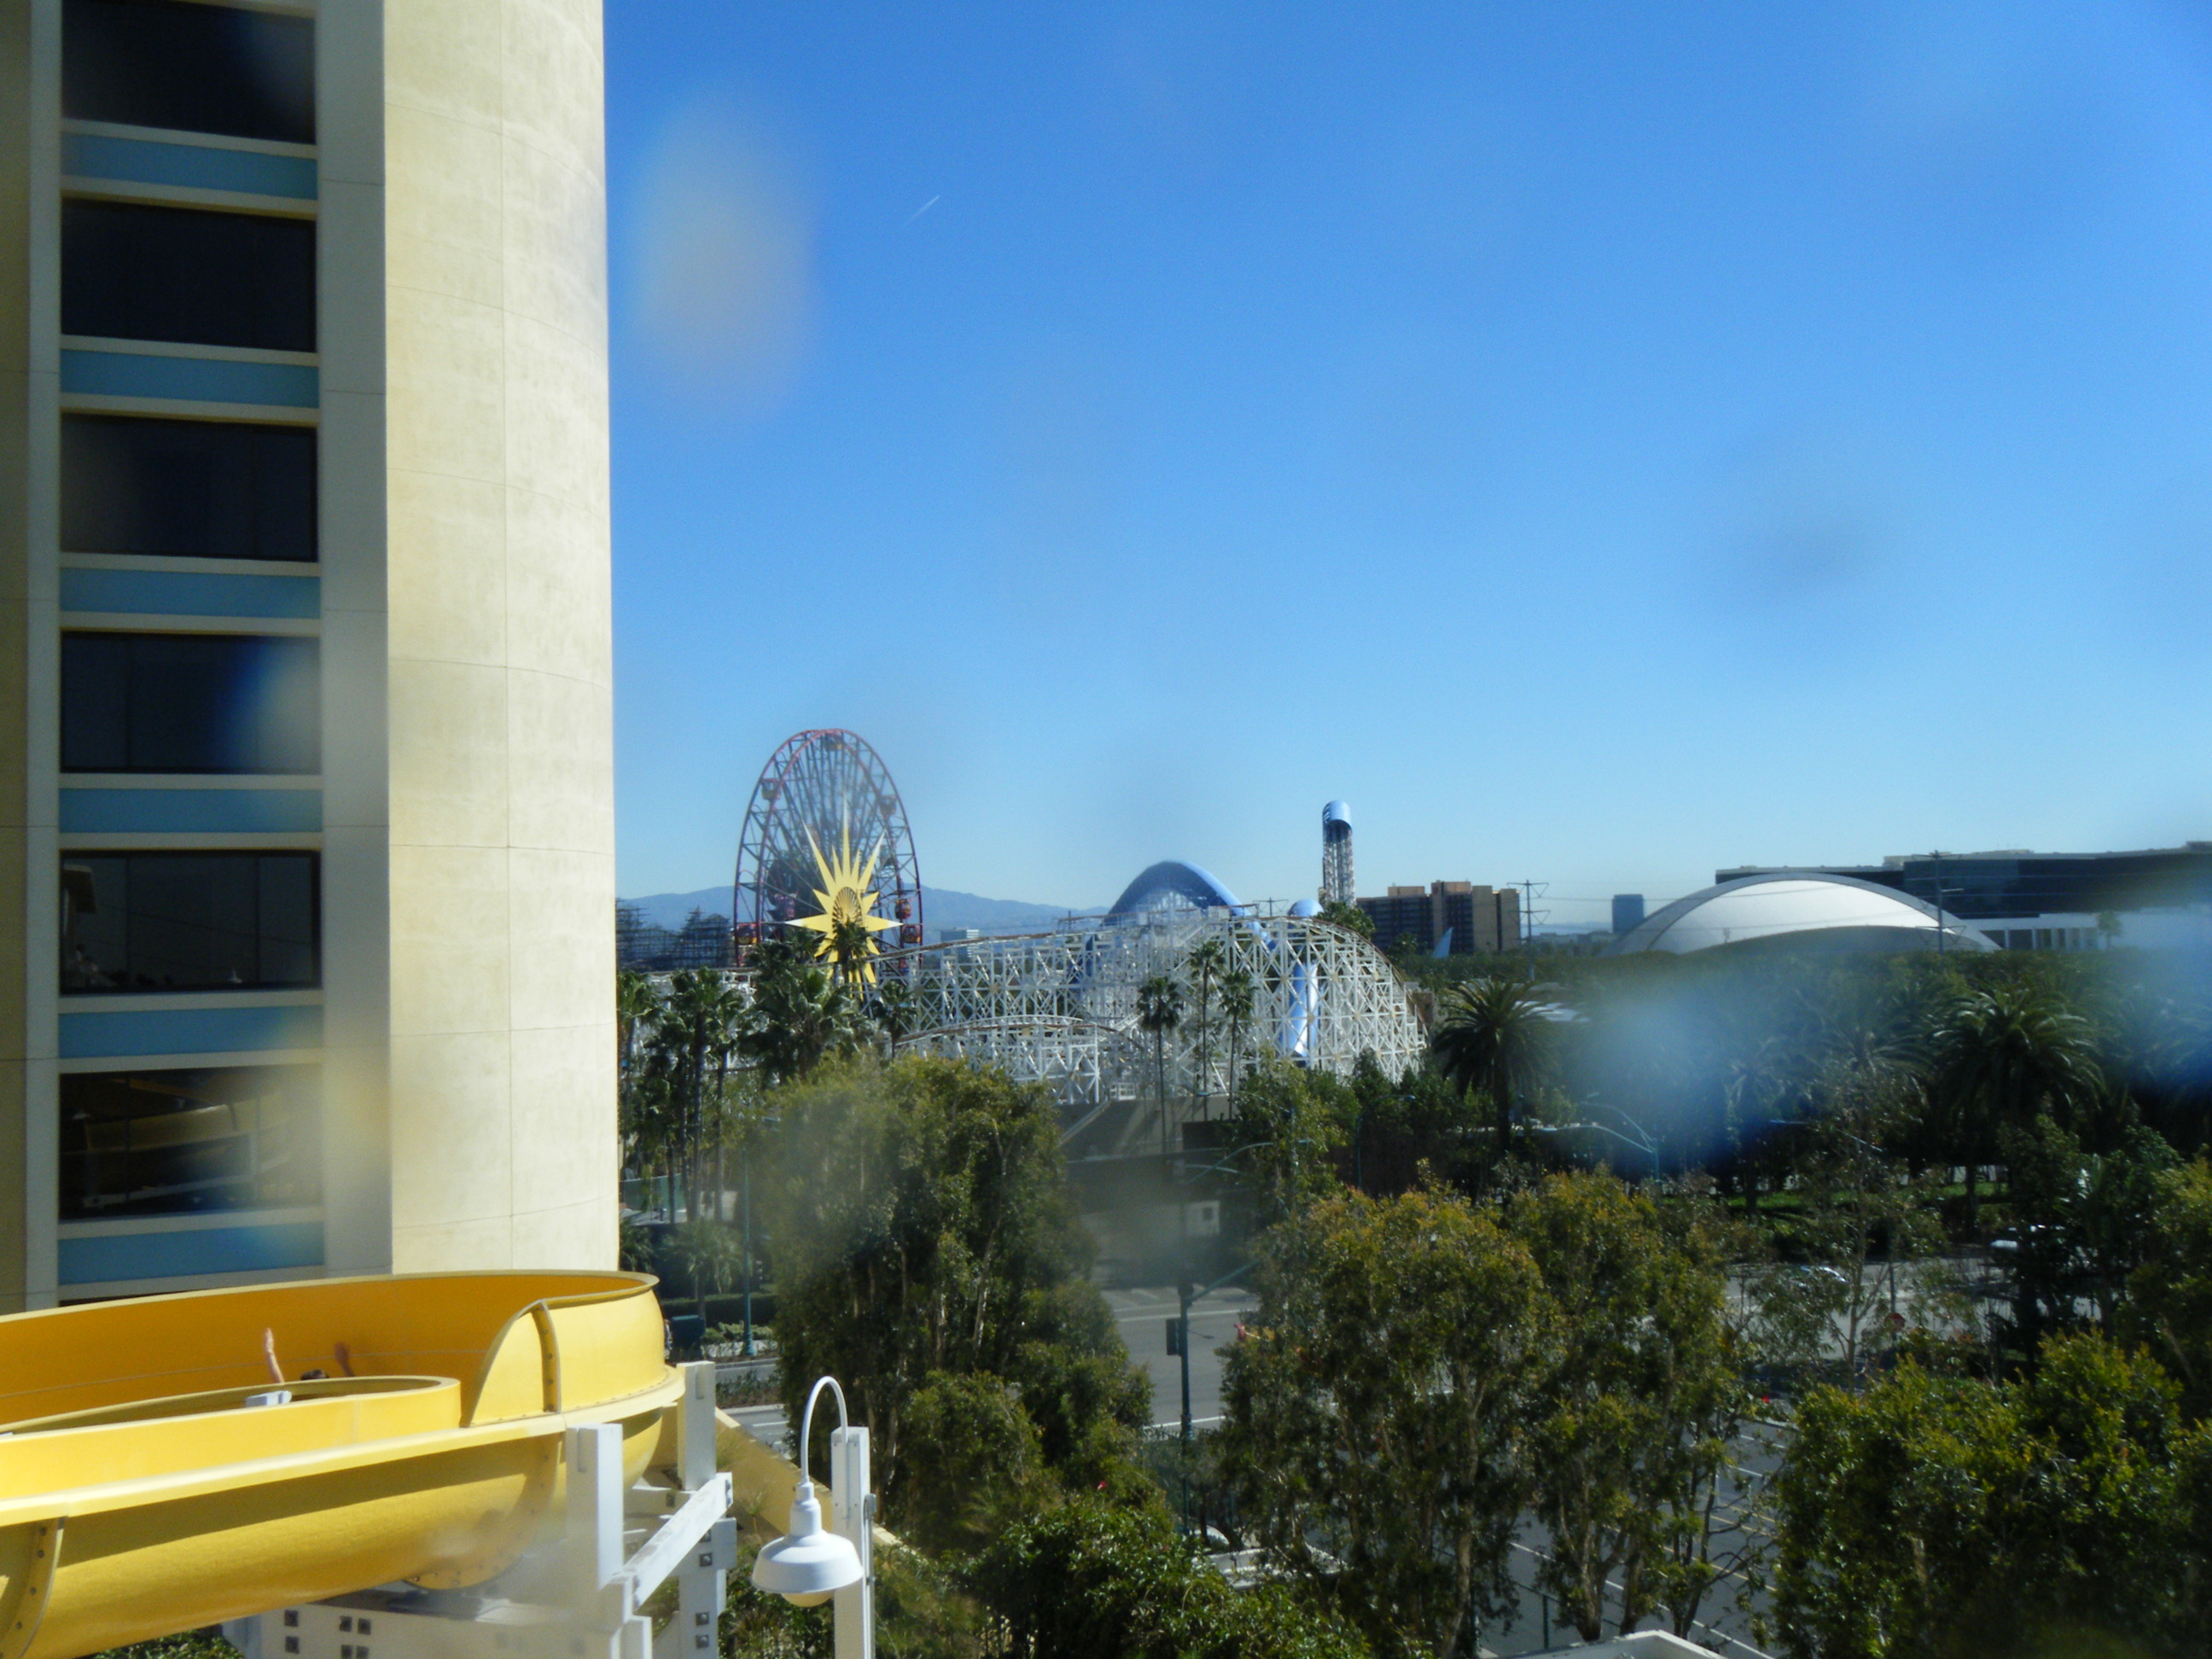 View of Disney California Adventure Park from the Top of the Paradise Pier Hotel Slide